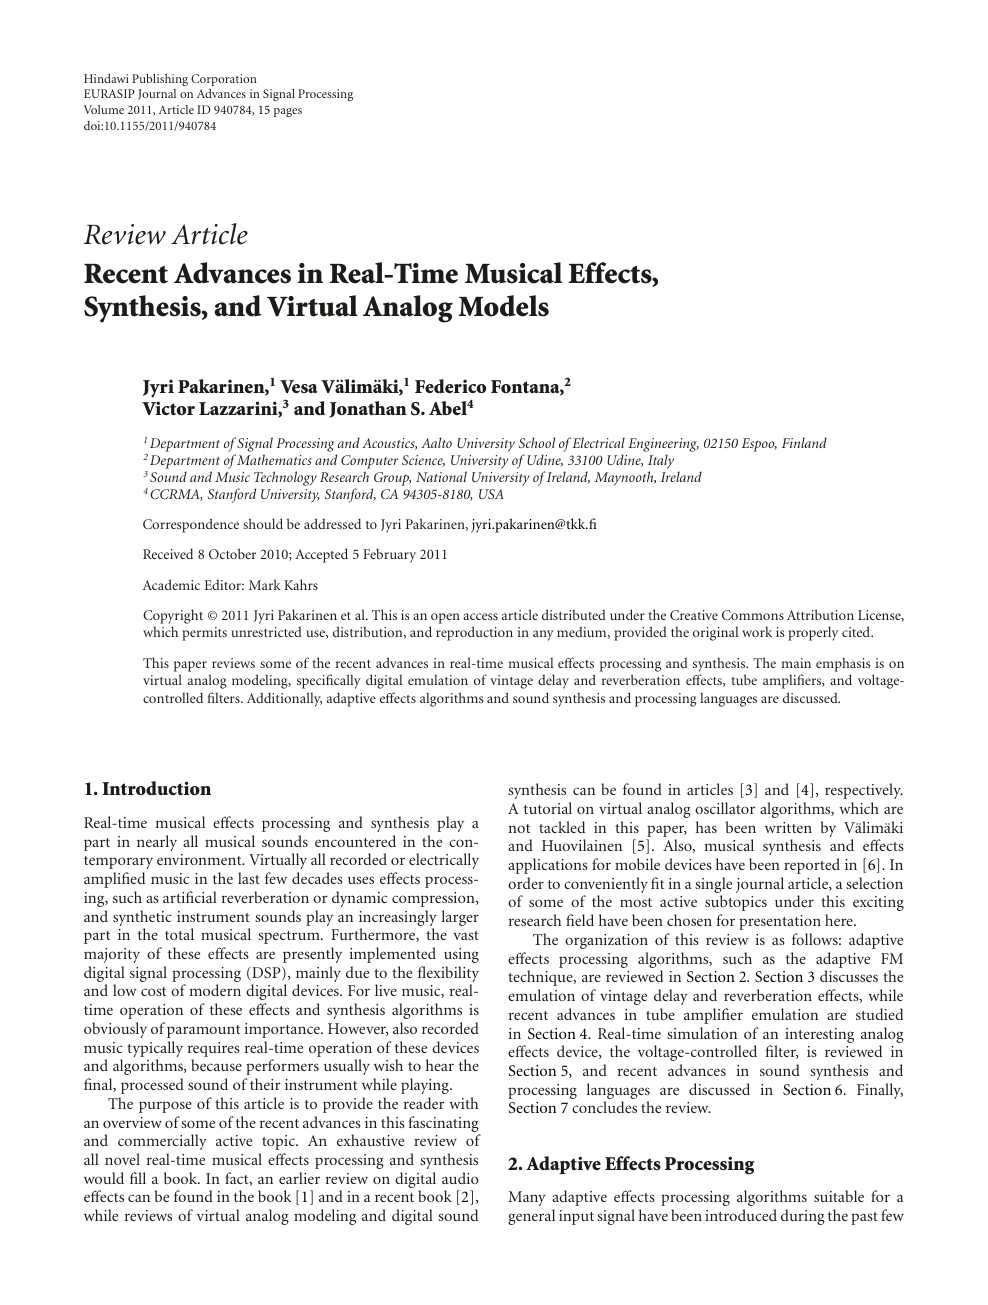 Recent Advances in Real-Time Musical Effects, Synthesis, and